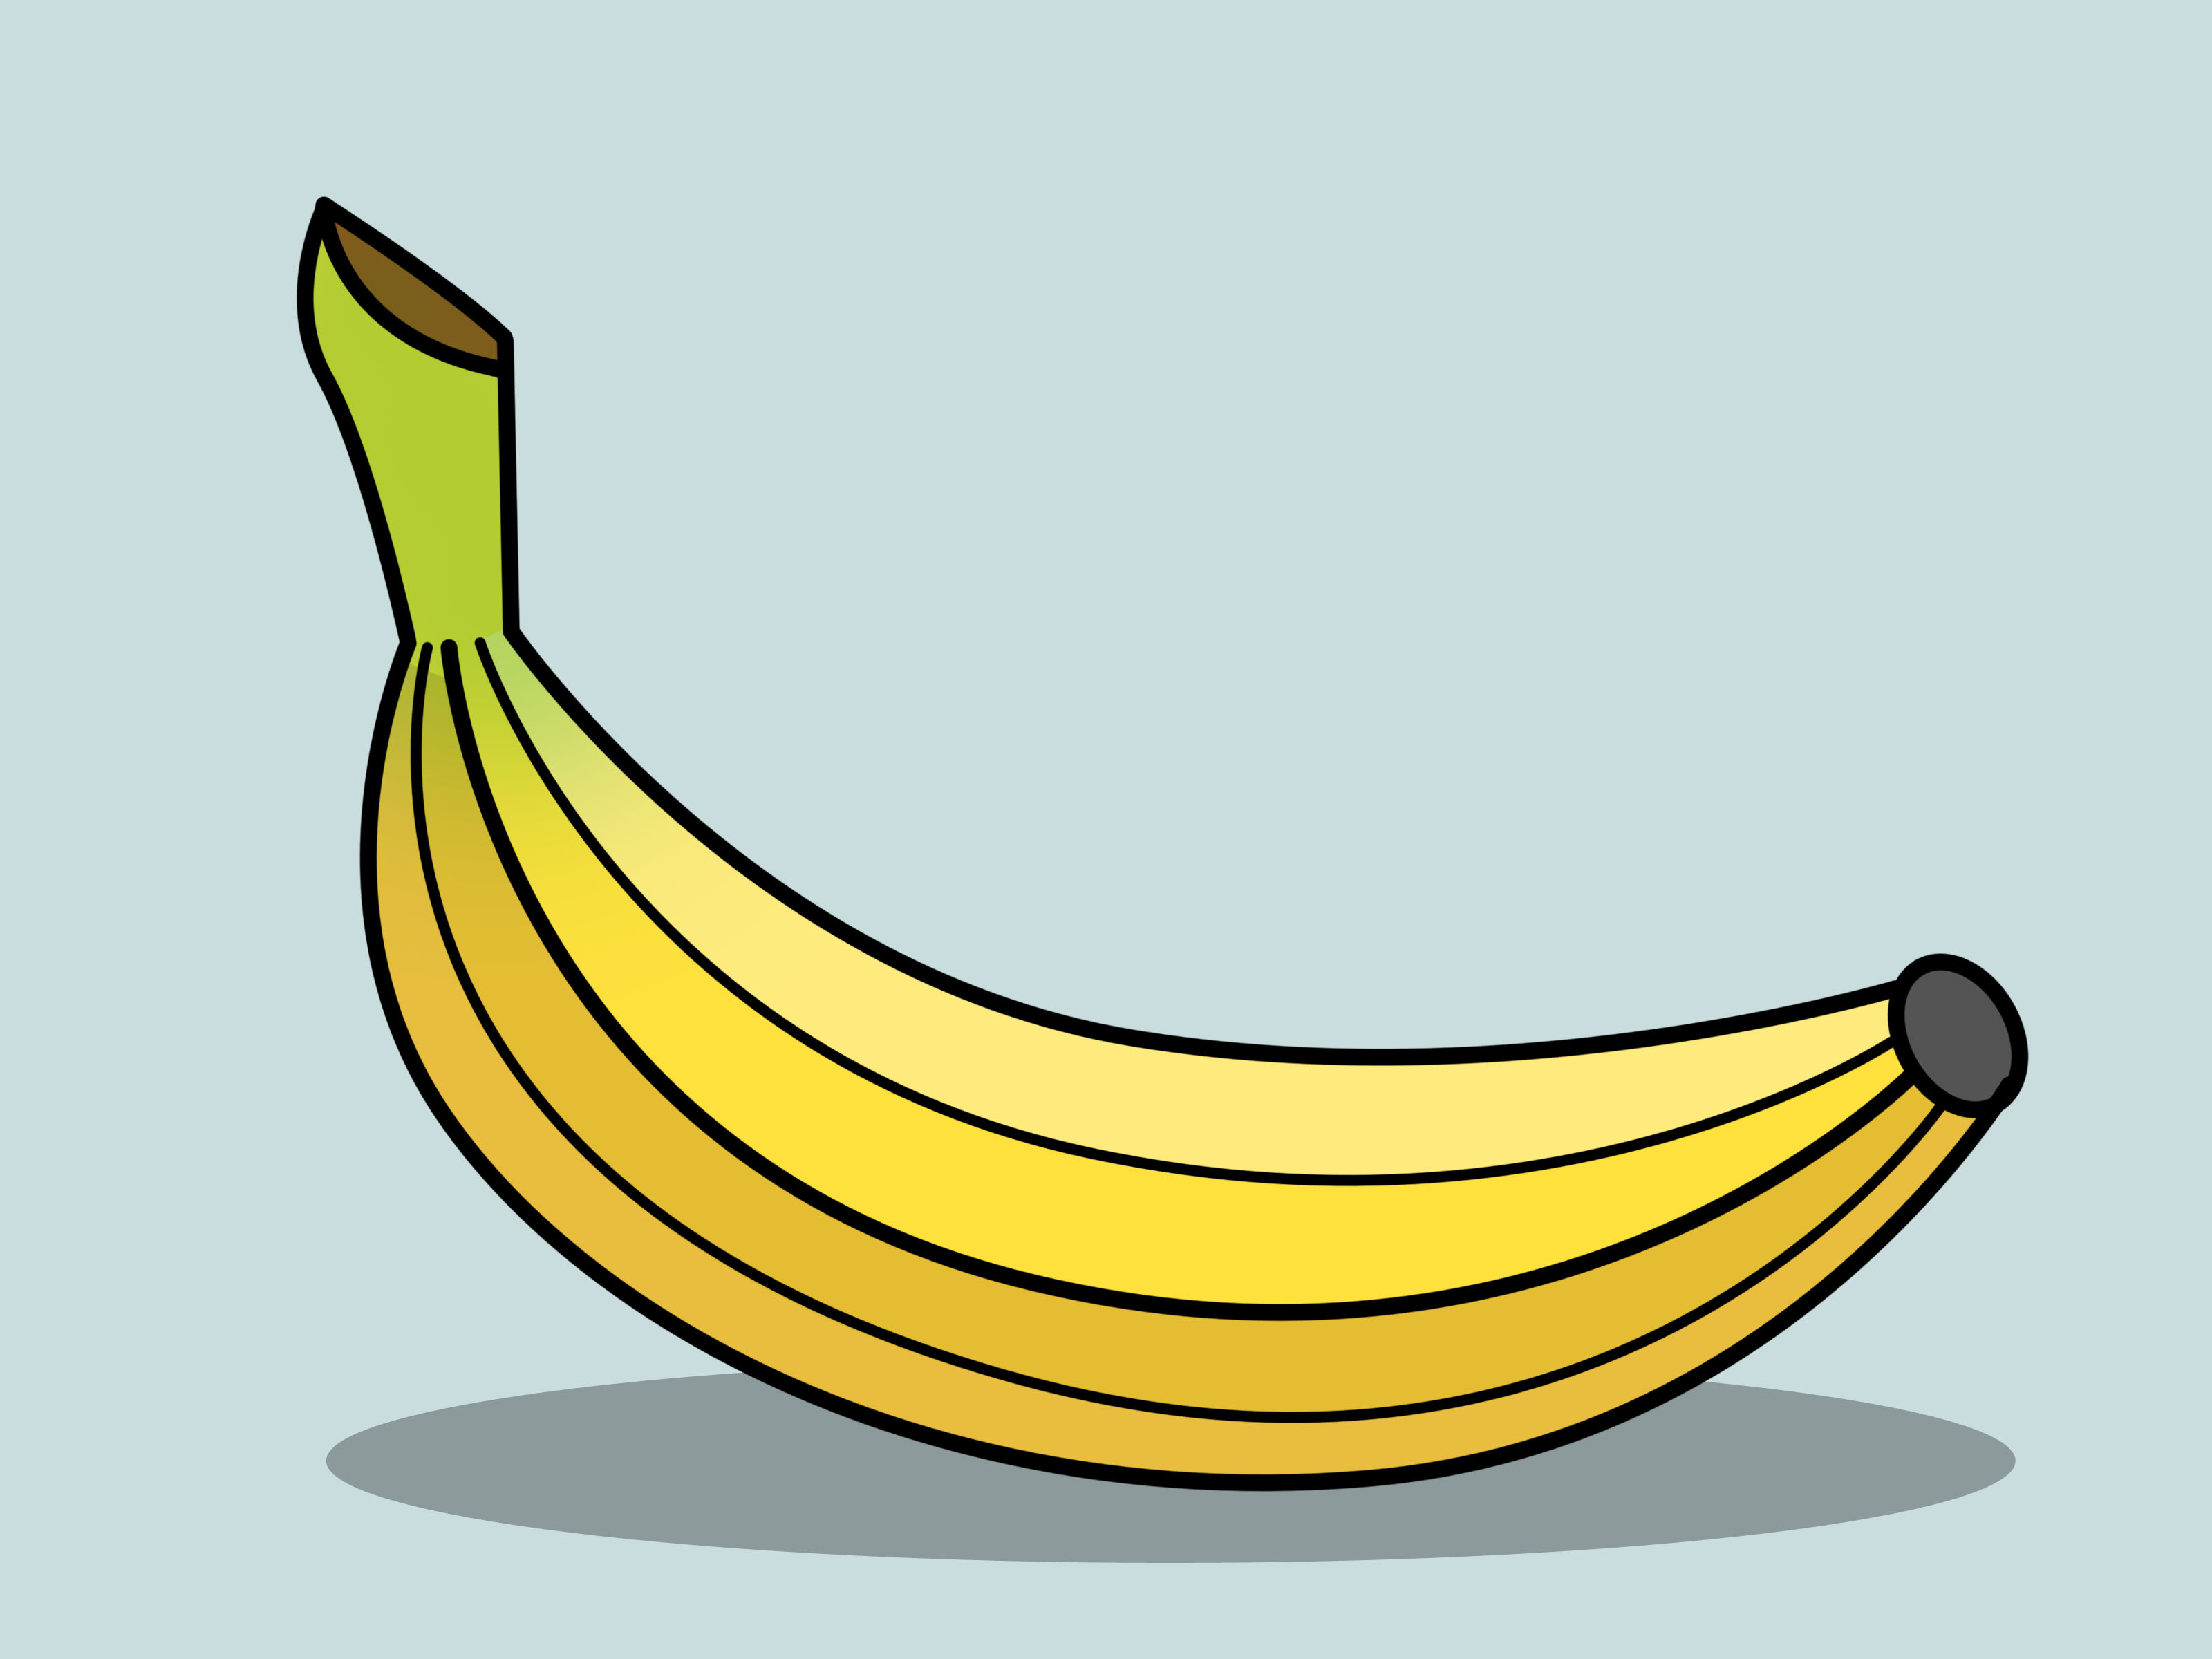 Drawn banana Pictures) 14  Steps a